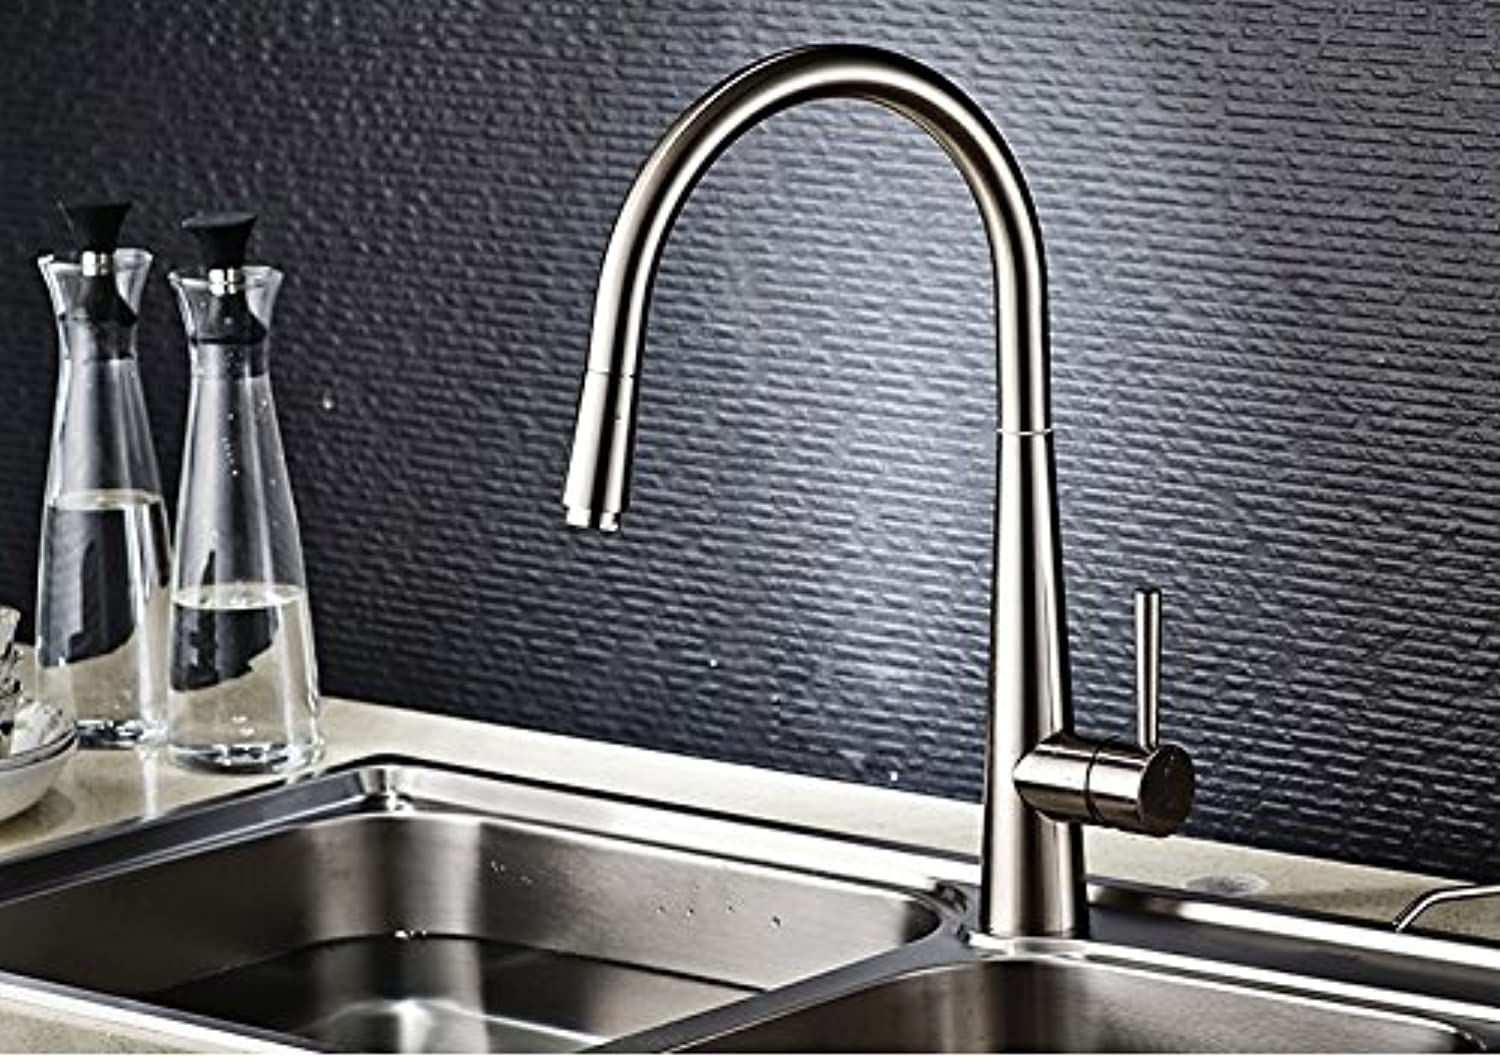 All Copper Hot And Cold Single Hole Pull Type Kitchen Faucet Drawbench Vegetables Basin Sink Washing-up Sink Faucet redate